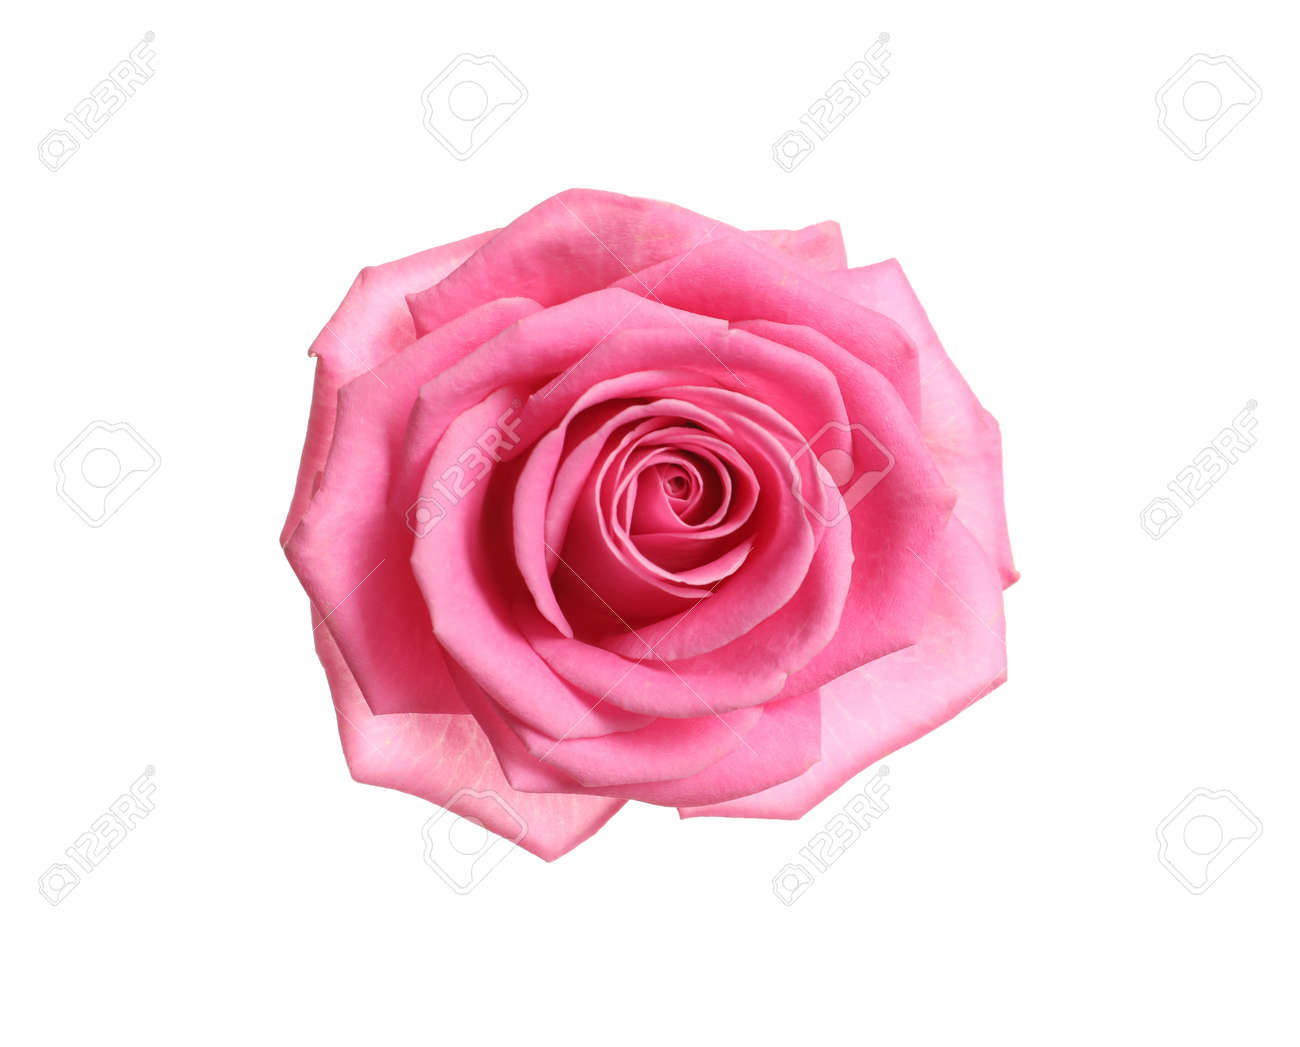 Beautiful blooming pink rose on white background, top view - 125054030